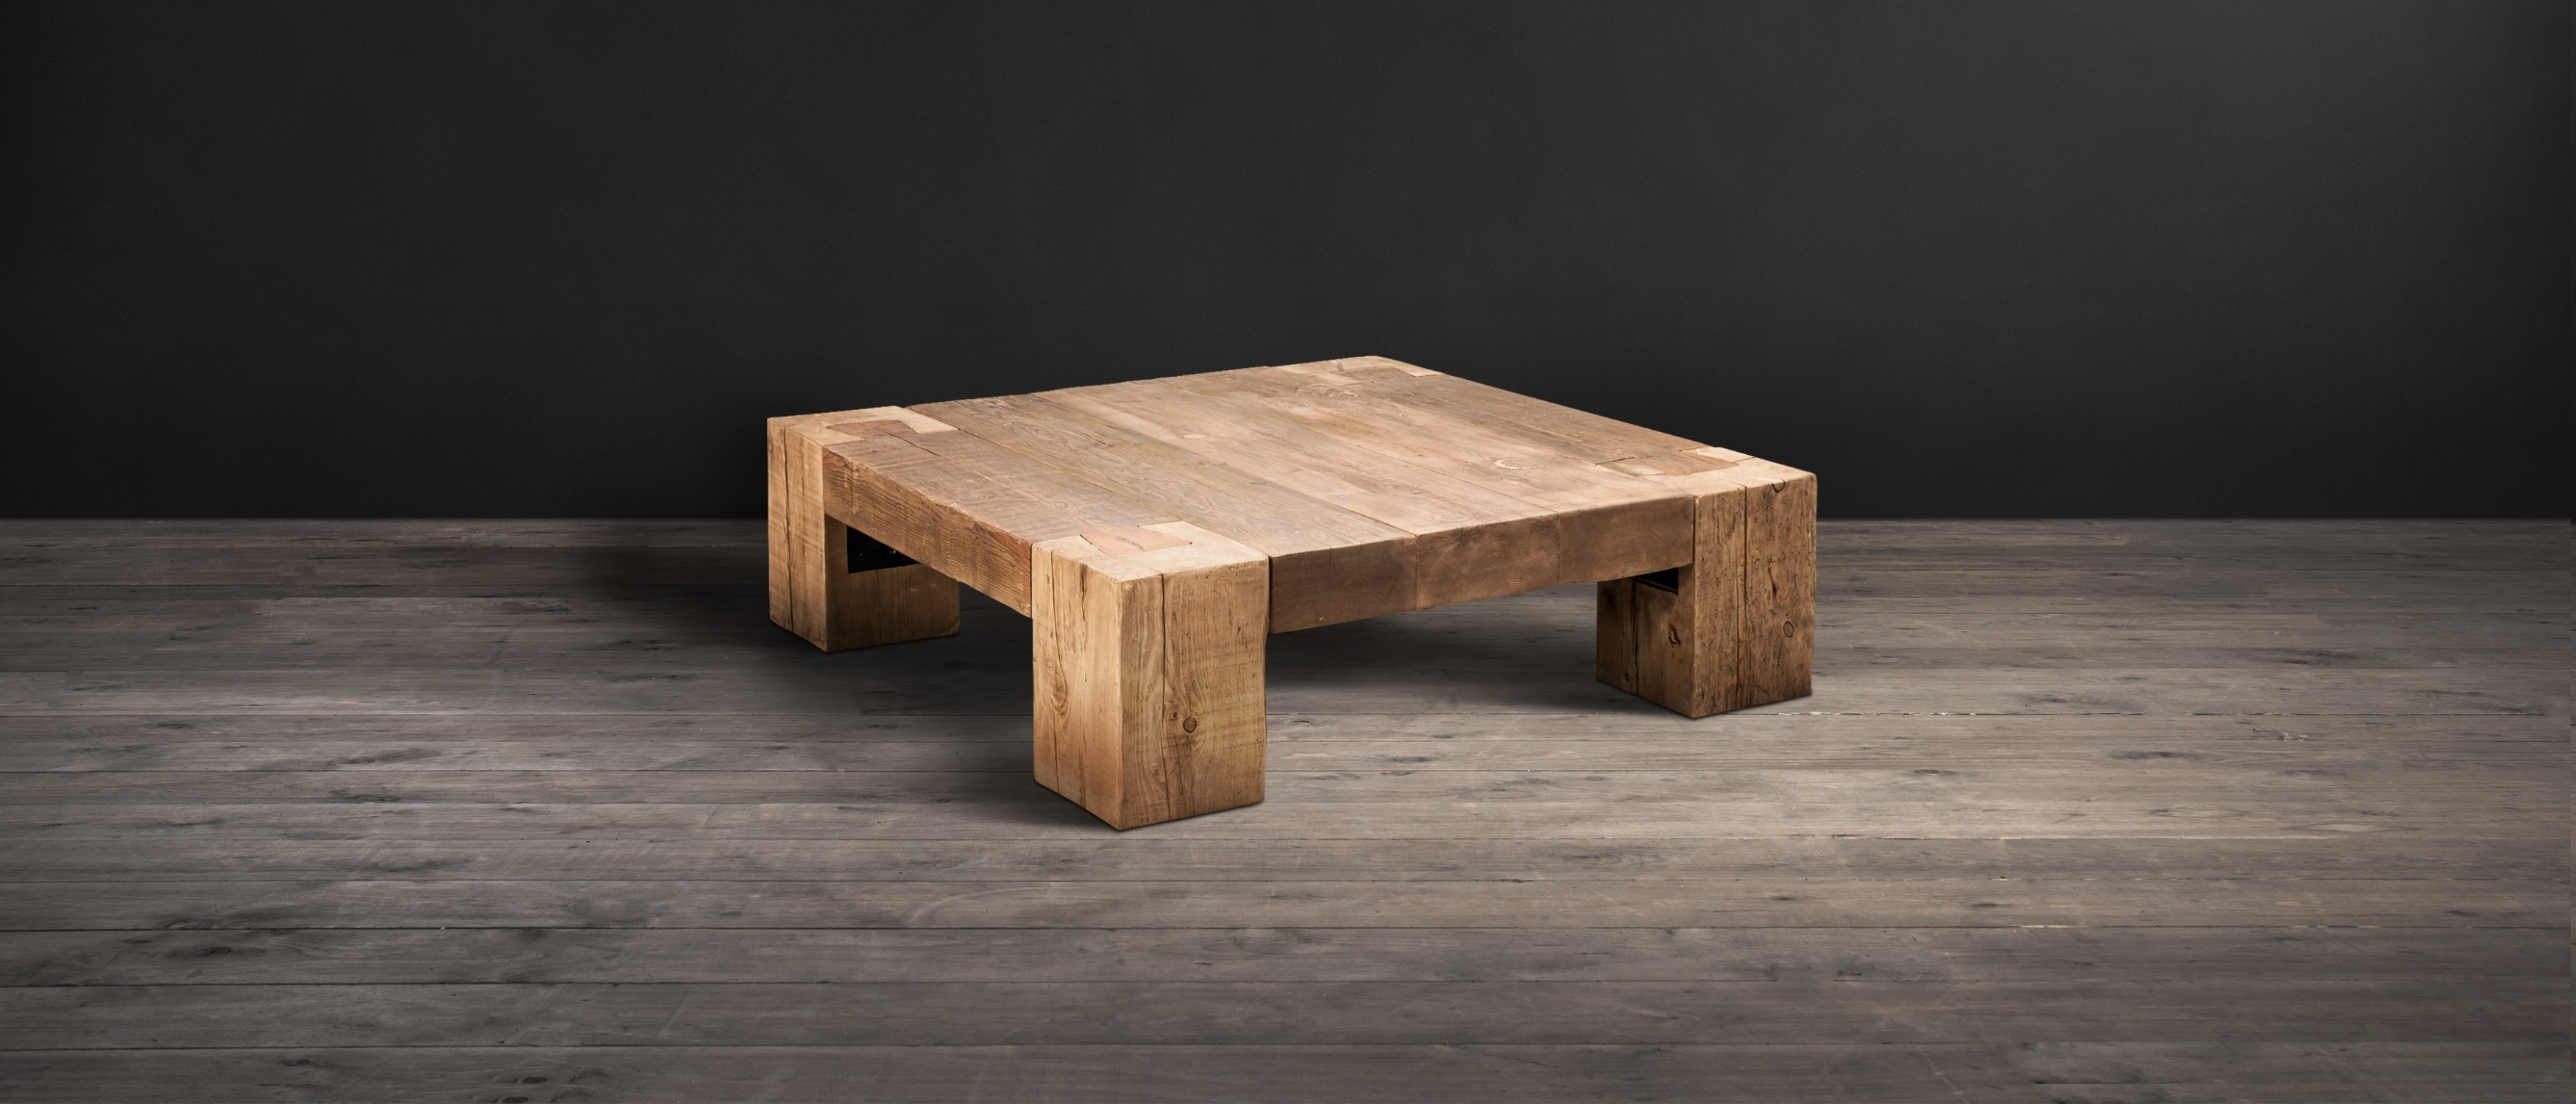 Wood Coffee Tables - English Beam | Timothy Oulton with Mill Large Coffee Tables (Image 29 of 30)